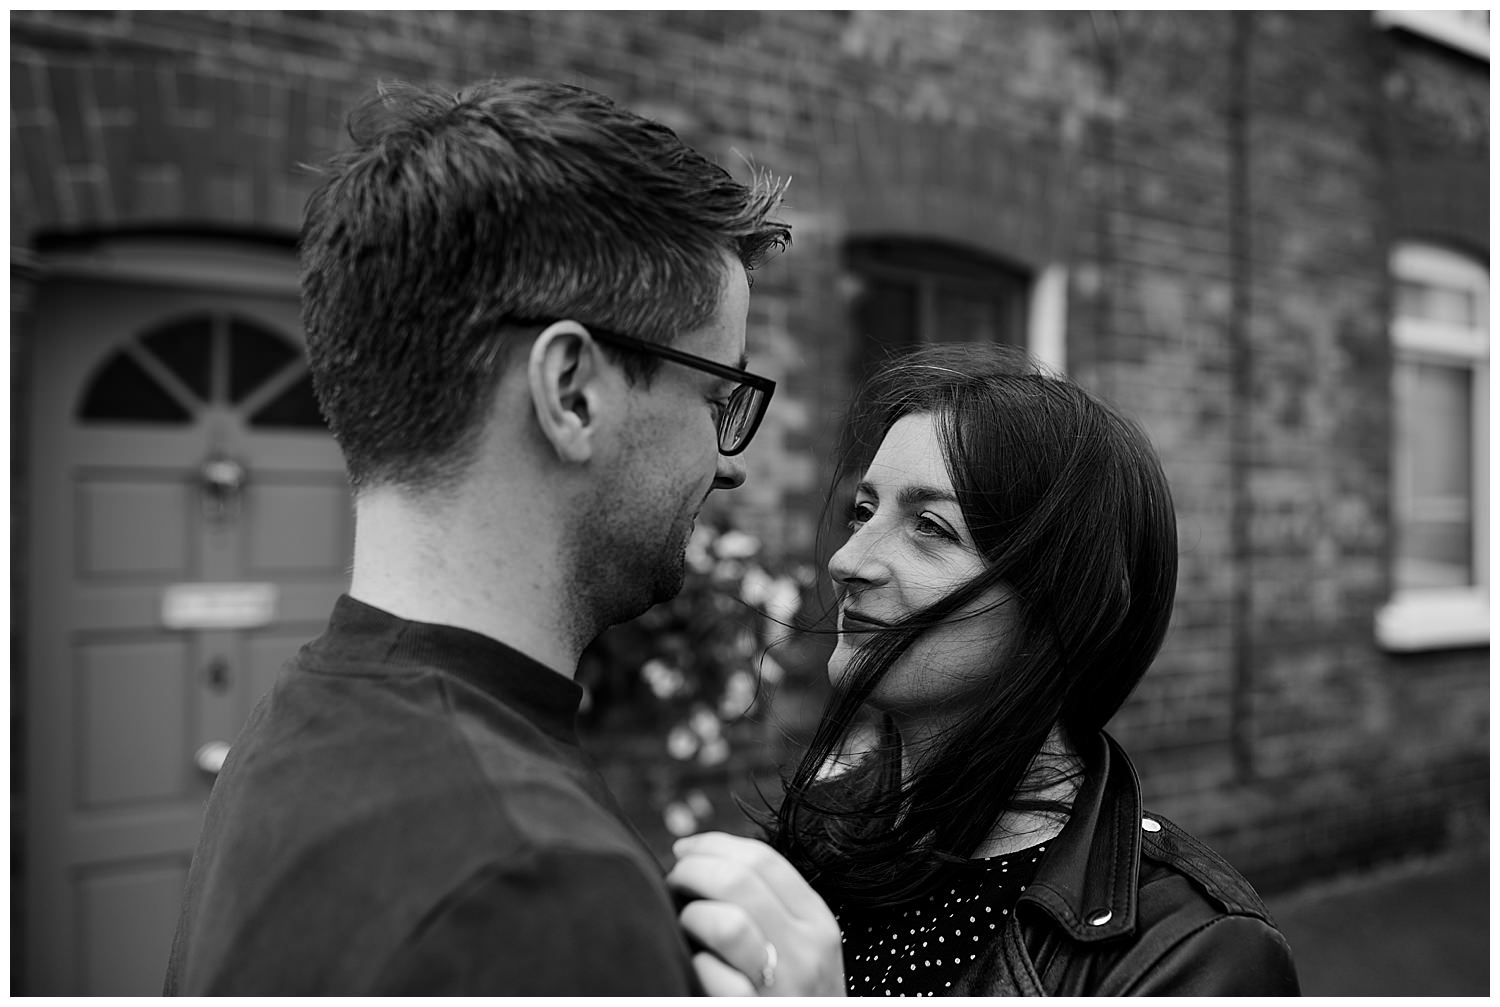 j-l-house-engagement-session-dublin-wedding-photographer-livia-figueiredo_8.jpg